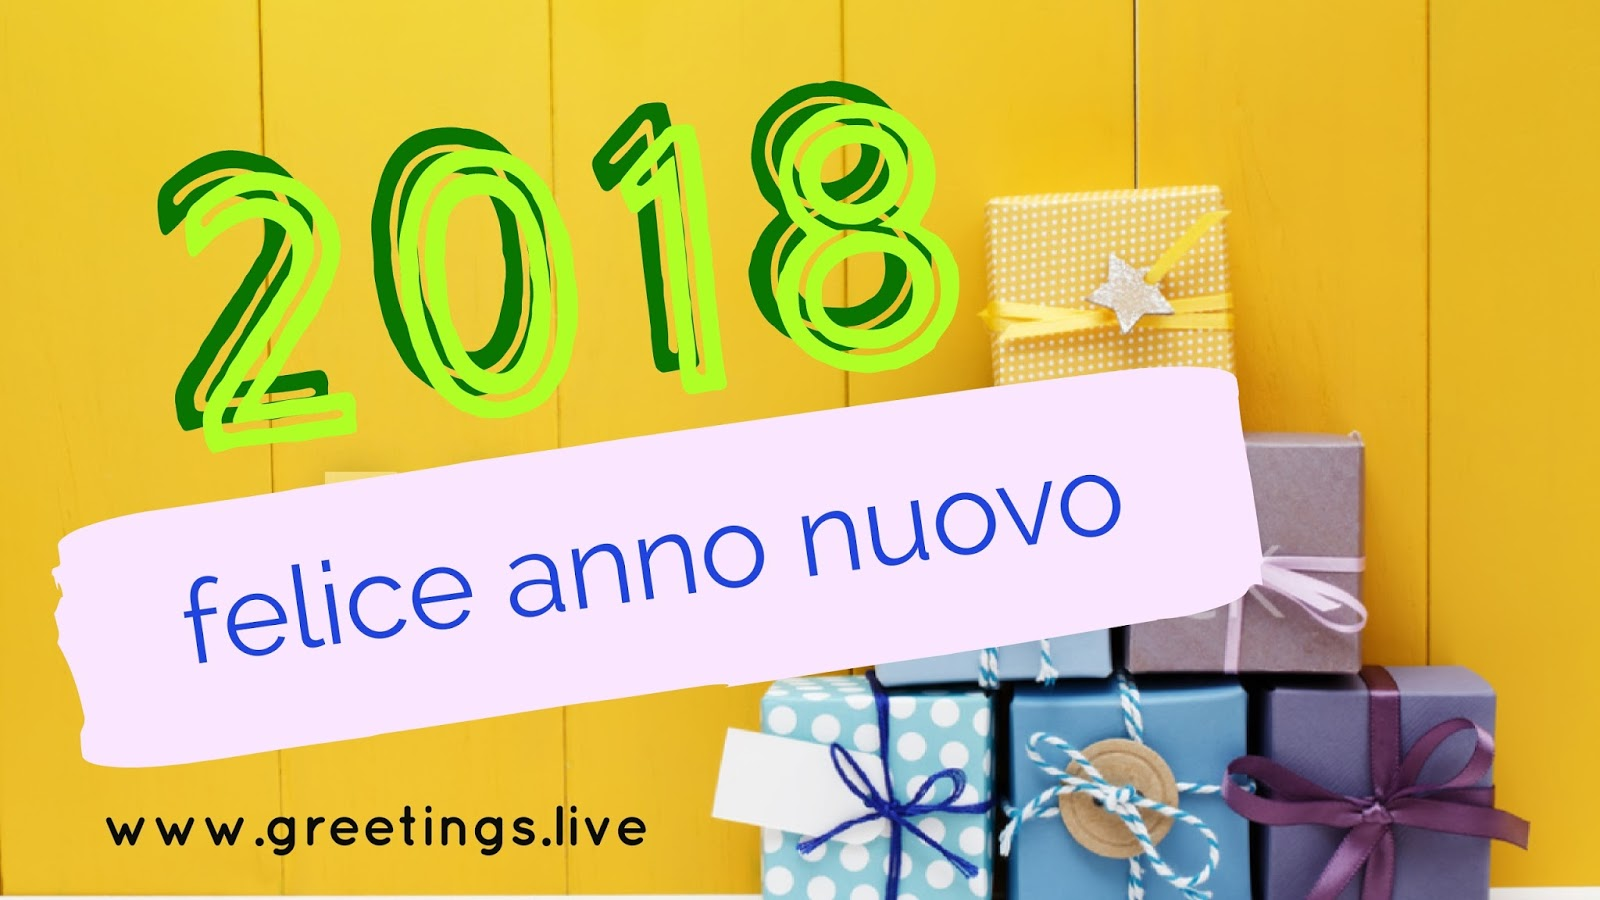 Greetingsve free hd images to express wishes all occasions italian happy new year greetings felice anno nuovo m4hsunfo